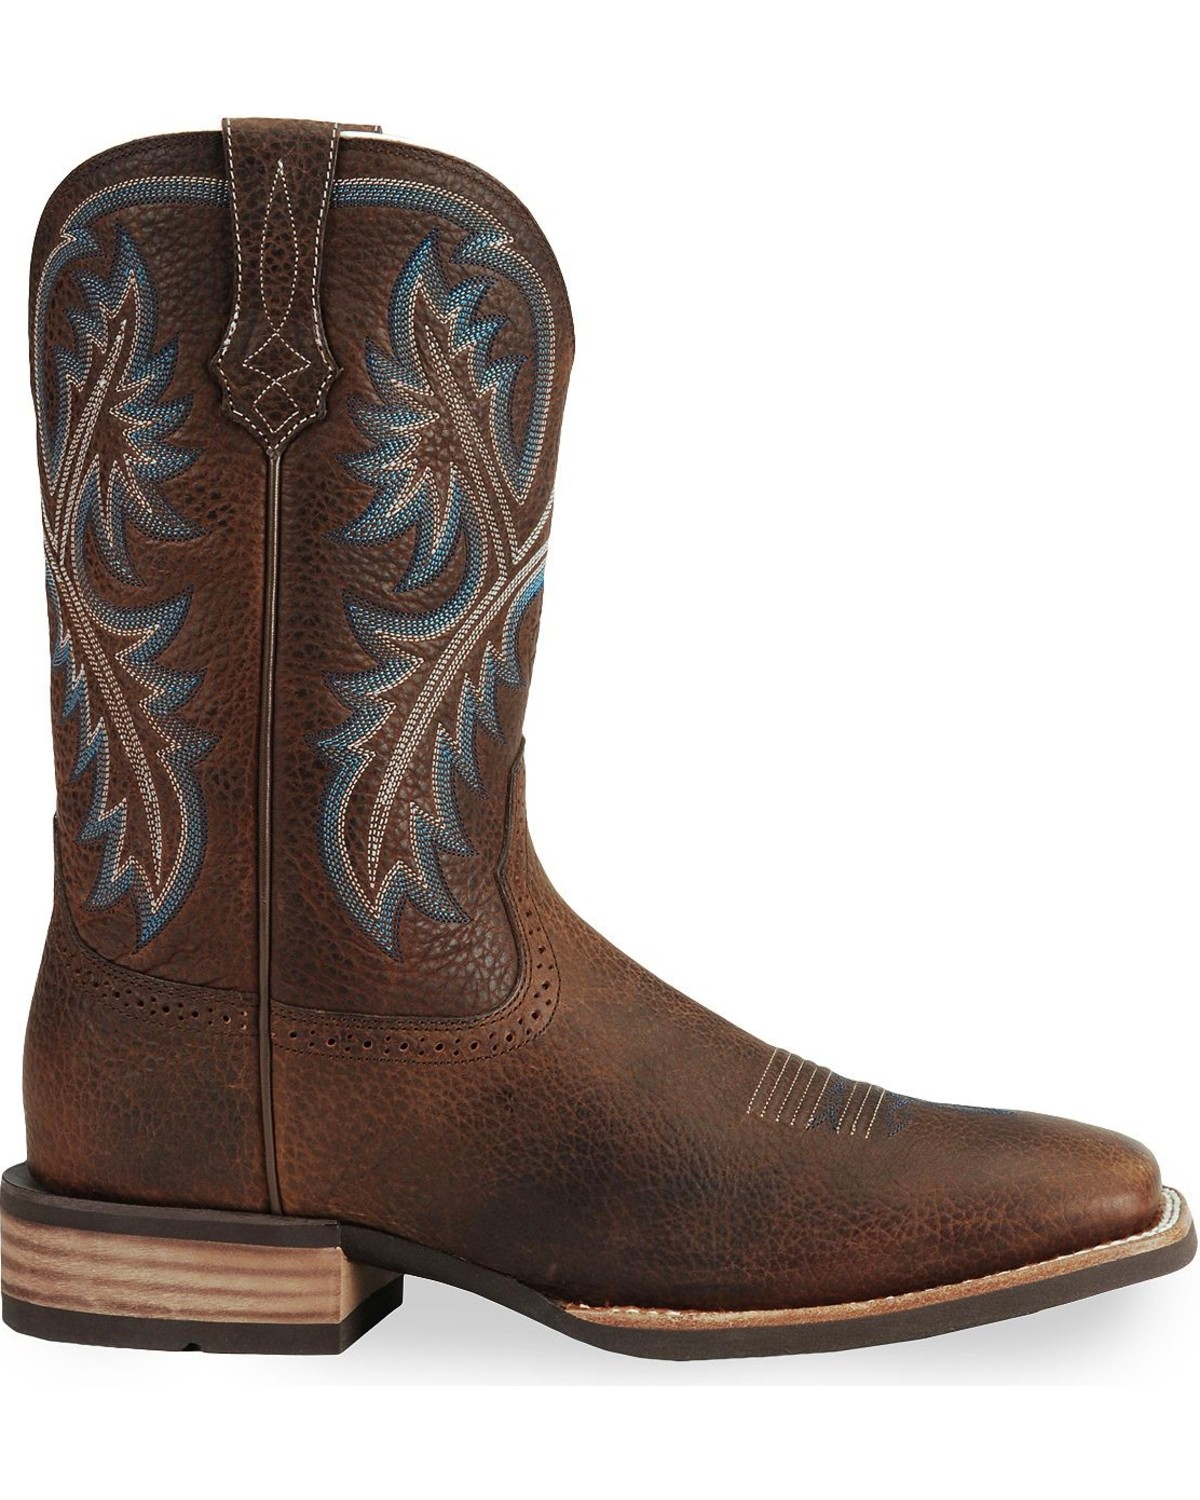 sheplers western wear Welcome to ashamedphilippines.ml, the #1 western wear and boot store on the web. We have the world's largest collection of cowboy apparel and outdoor work clothes with over 27, Styles & 14,, items.